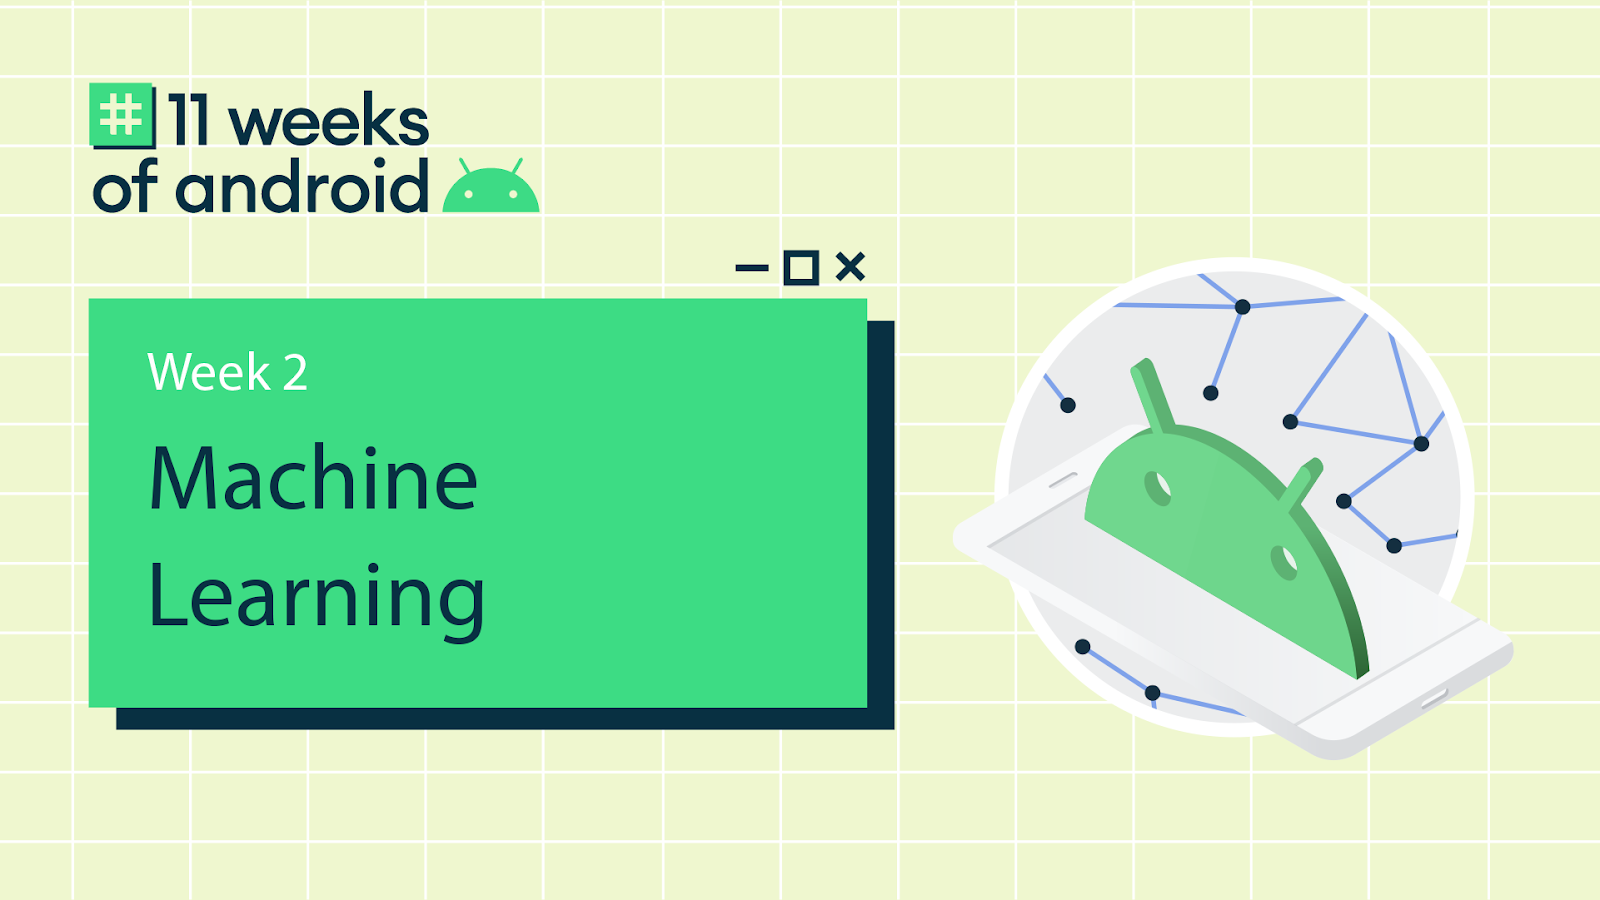 #11WeeksOfAndroid Week 2 Machine Learning with Android logo head